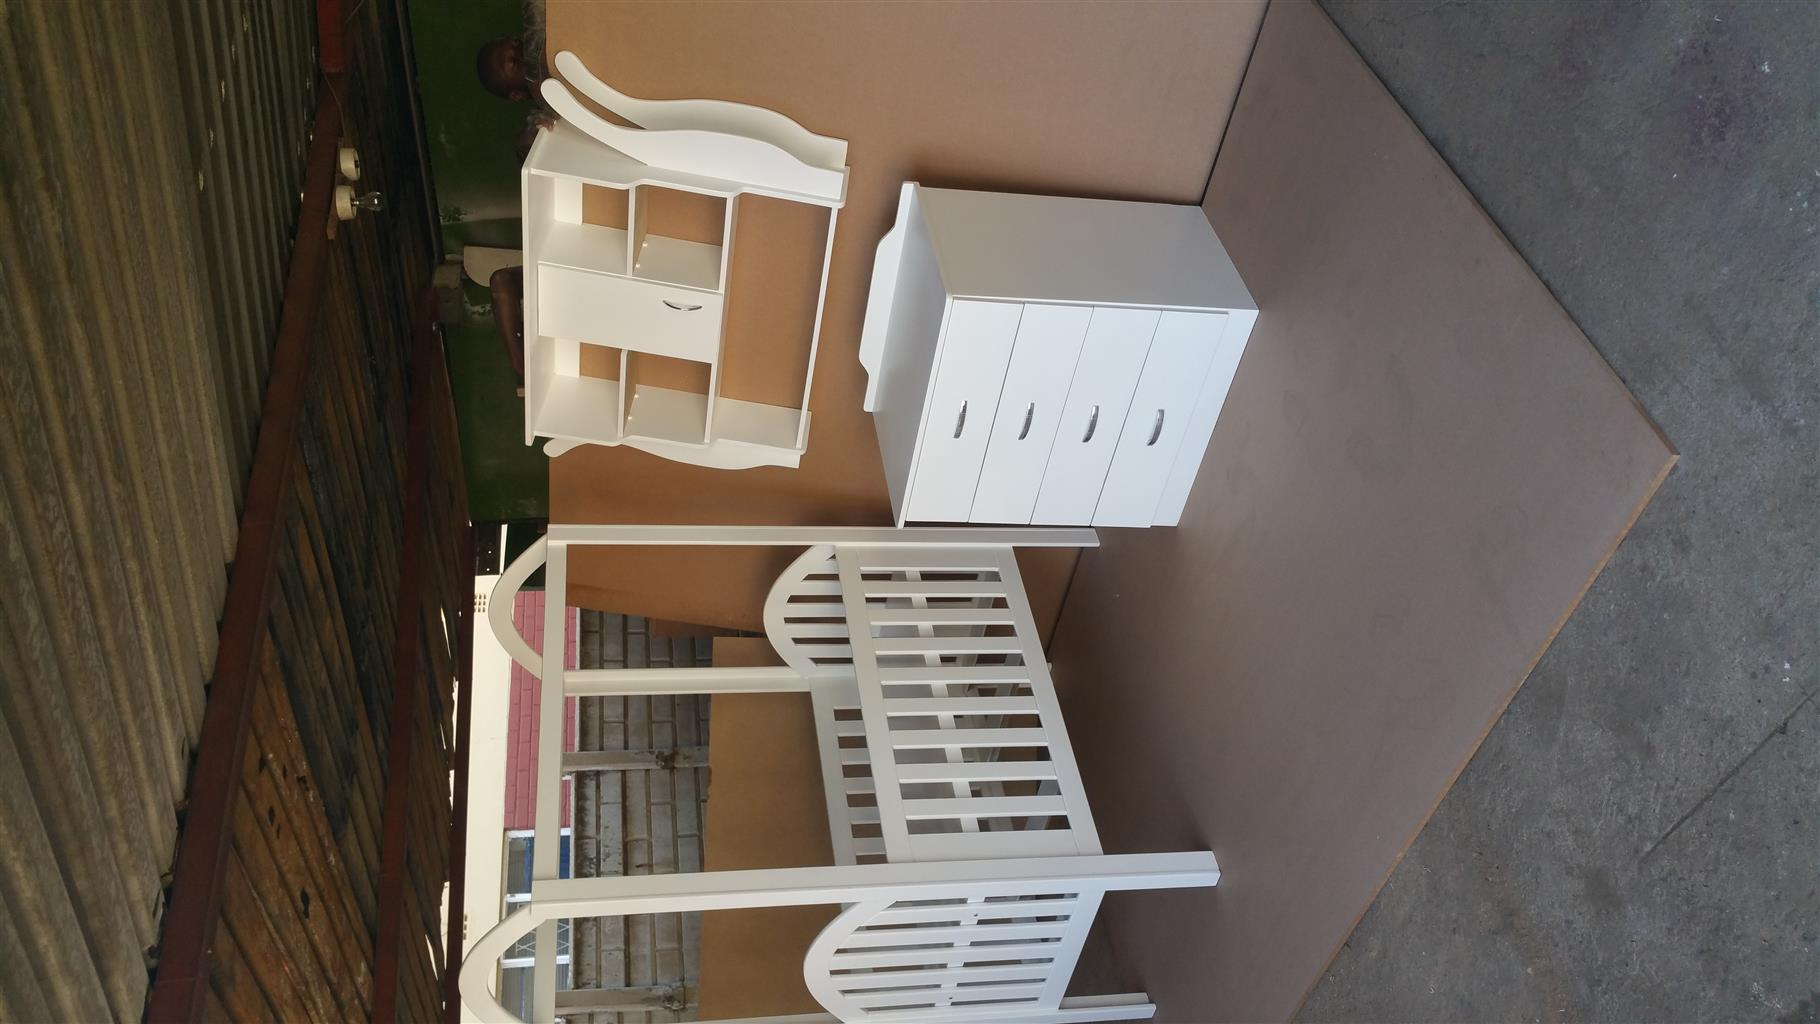 Iris Highline Cot and Compactum Combo with Display R6499,00